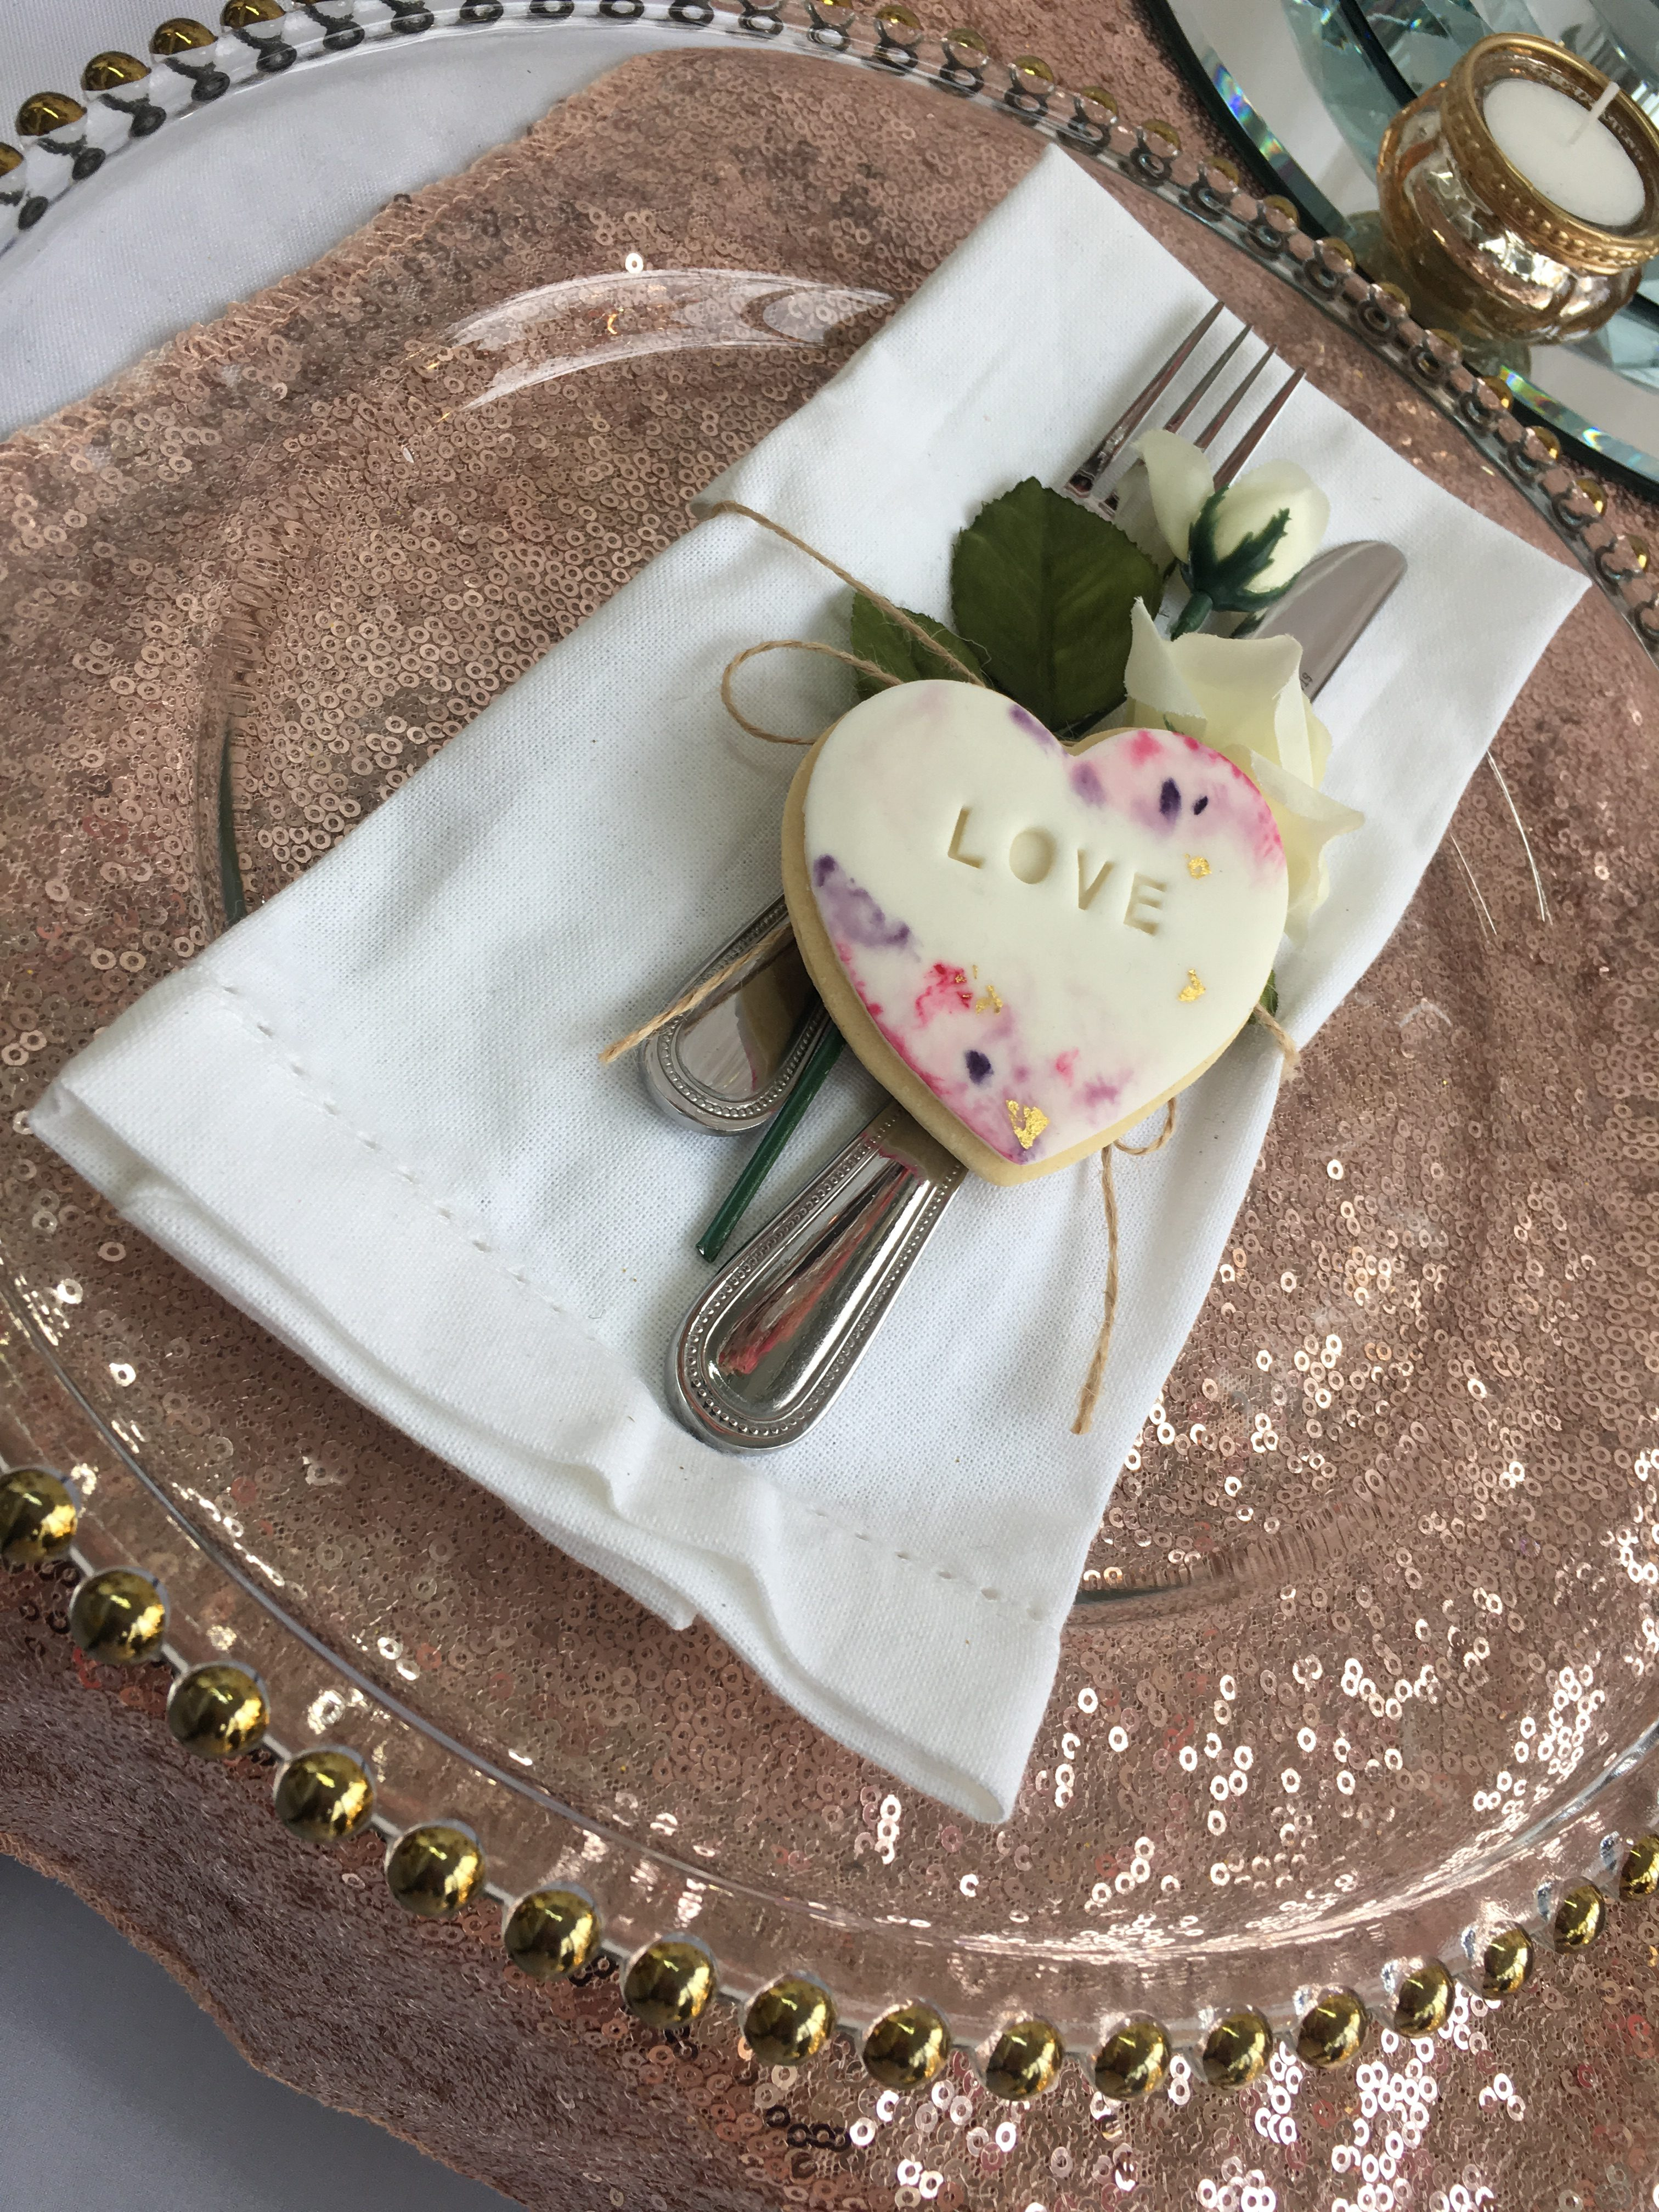 Love Biscuits Favours Sophia's Final Touch - Venue Styling - Weddings